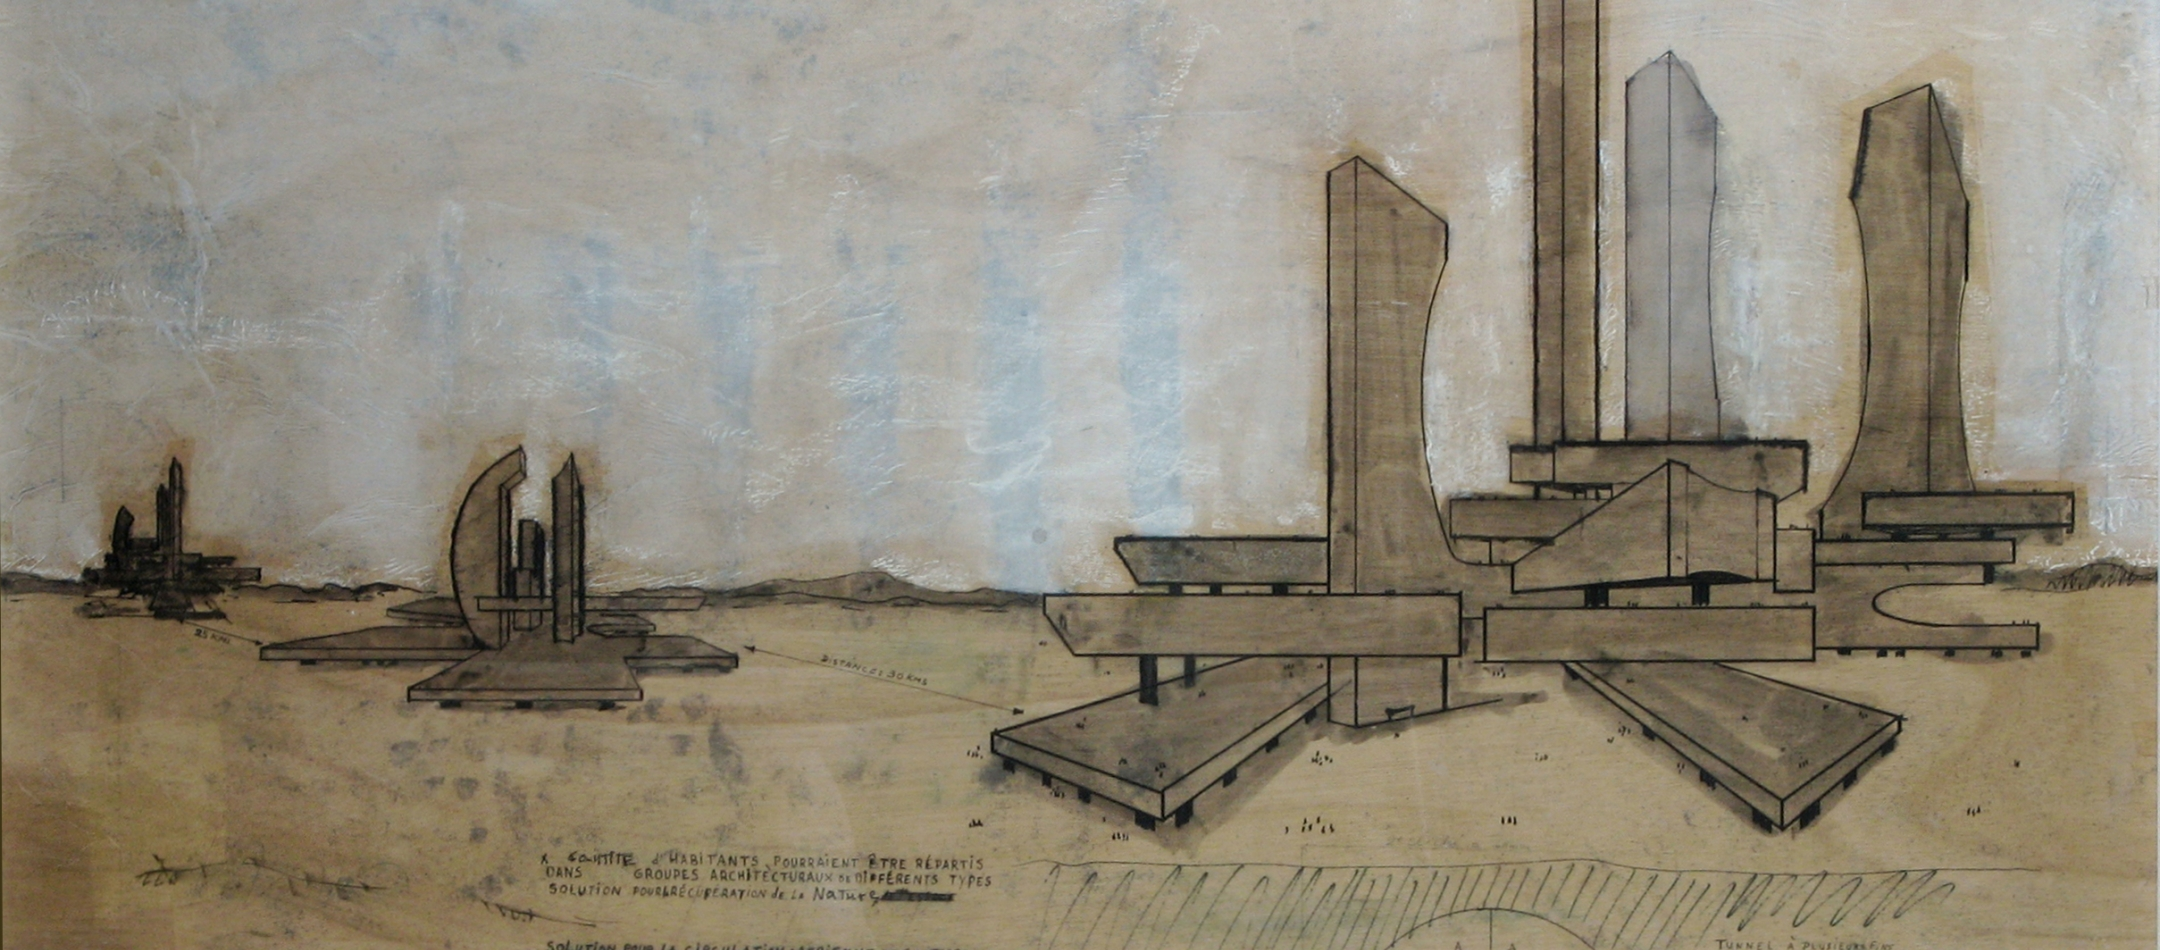 One of di Teana's meticulous sculptural-architectural drawings—plans which he frequently executed in the conception of his work.